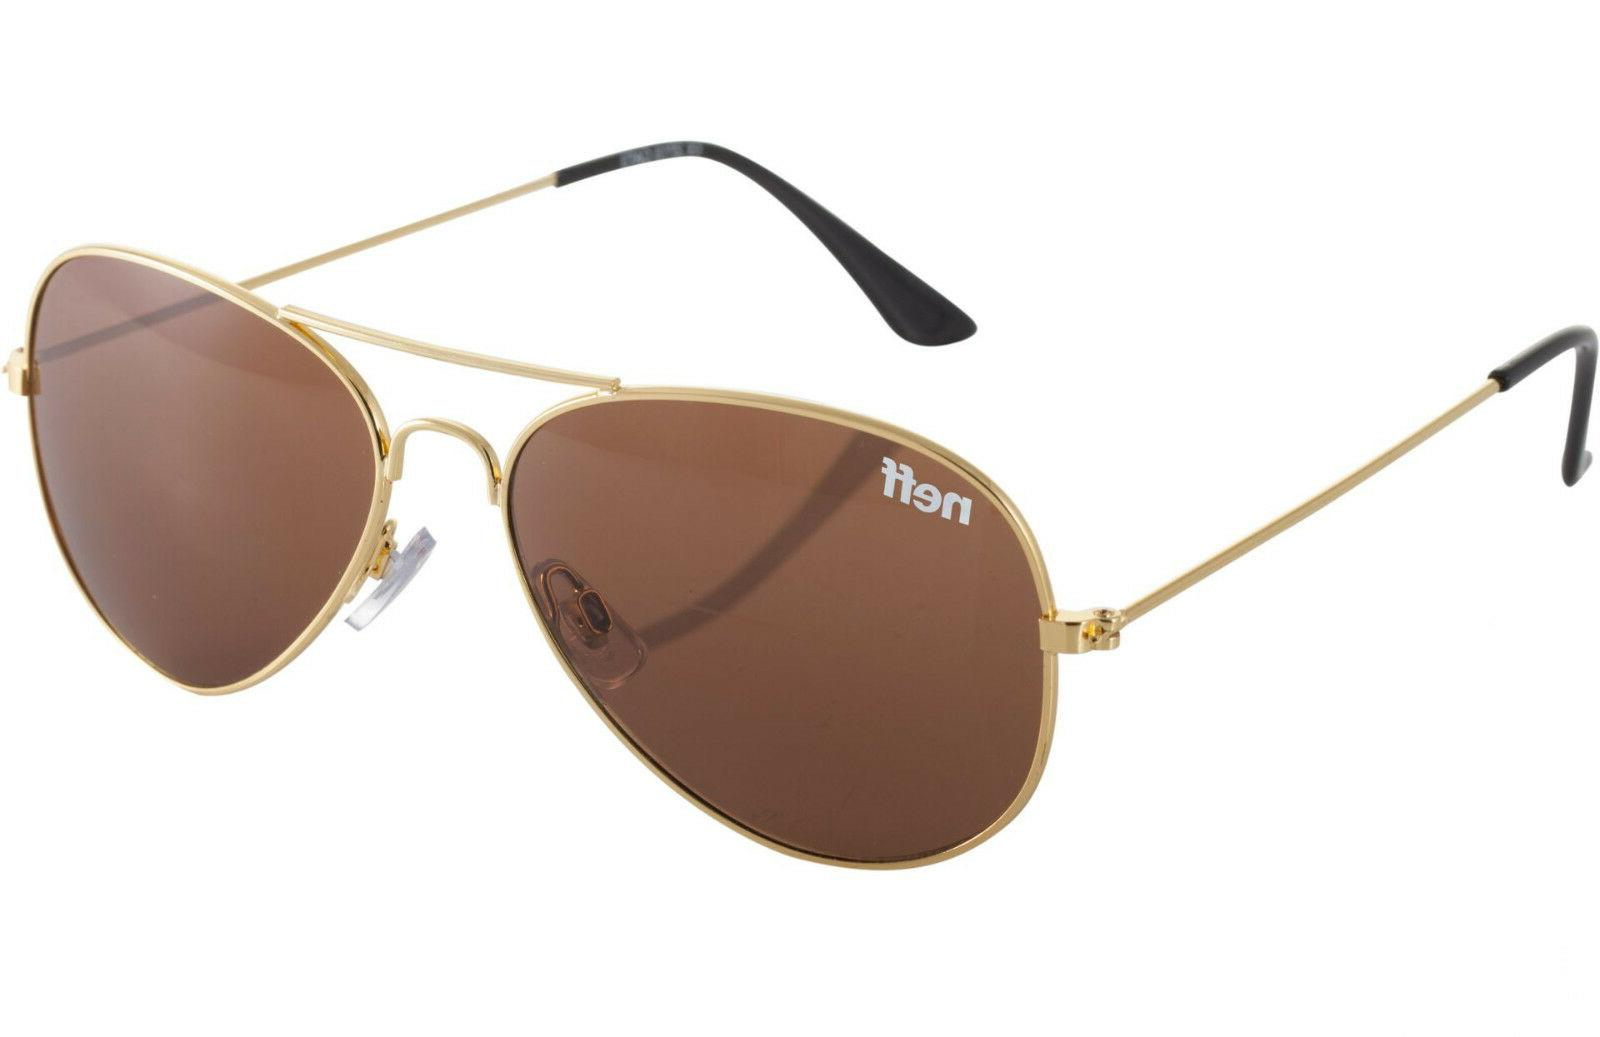 Neff Bronz Avaitor Shades Sunglasses With Cloth Pouch  - 100